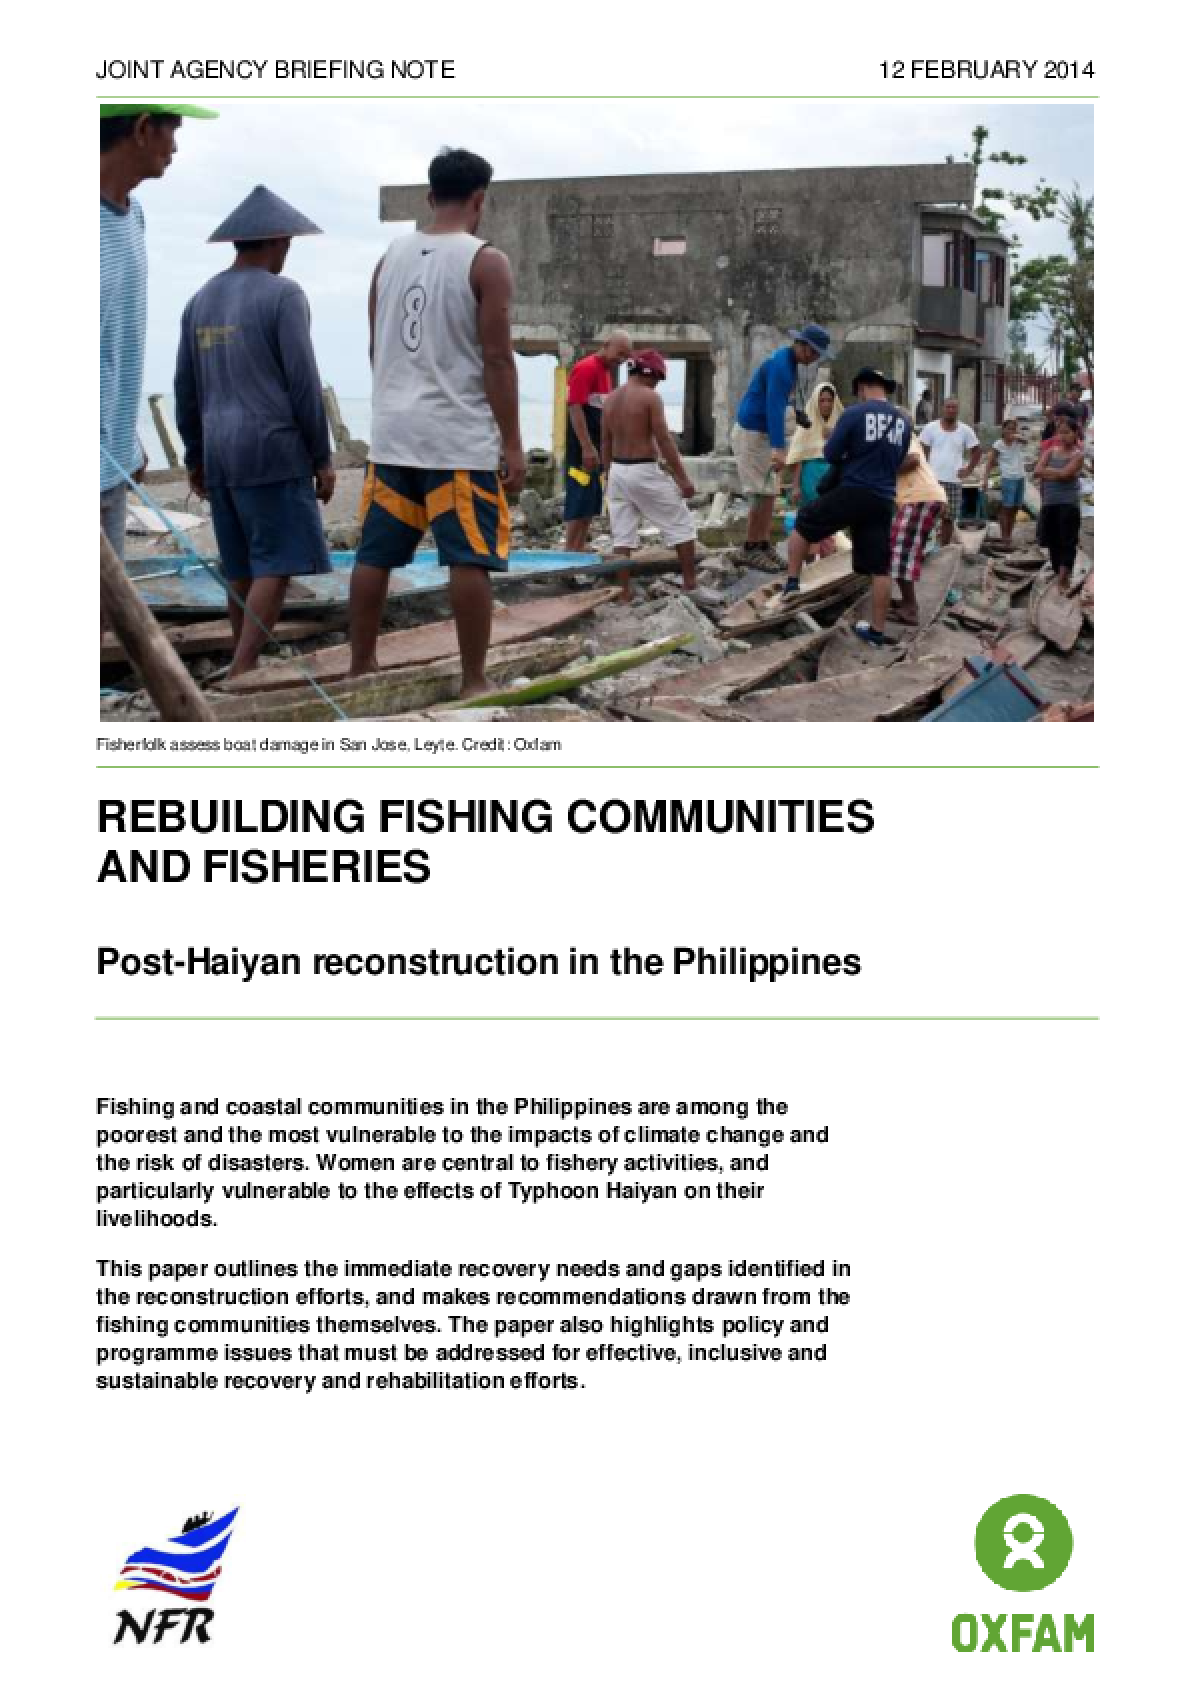 Rebuilding Fishing Communities and Fisheries: Post-Haiyan Reconstruction in the Philippines